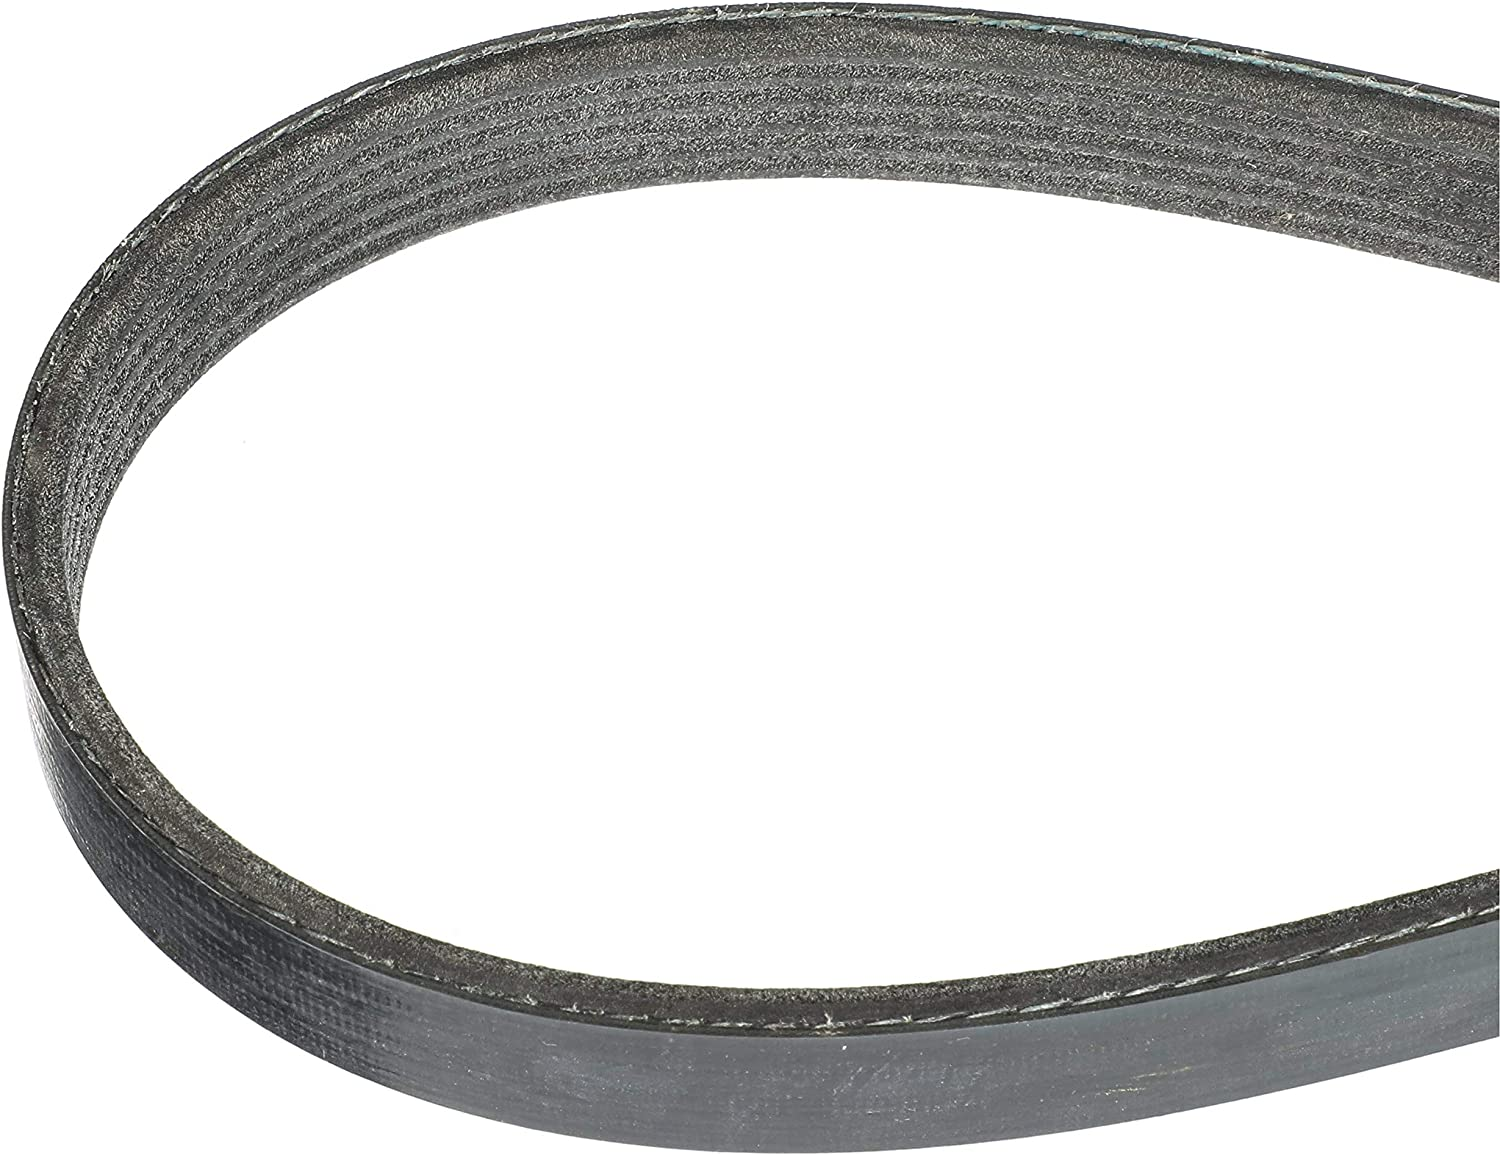 Serpentine for MerCruiser 2005 and Newer MIE 8.1S Engines ...